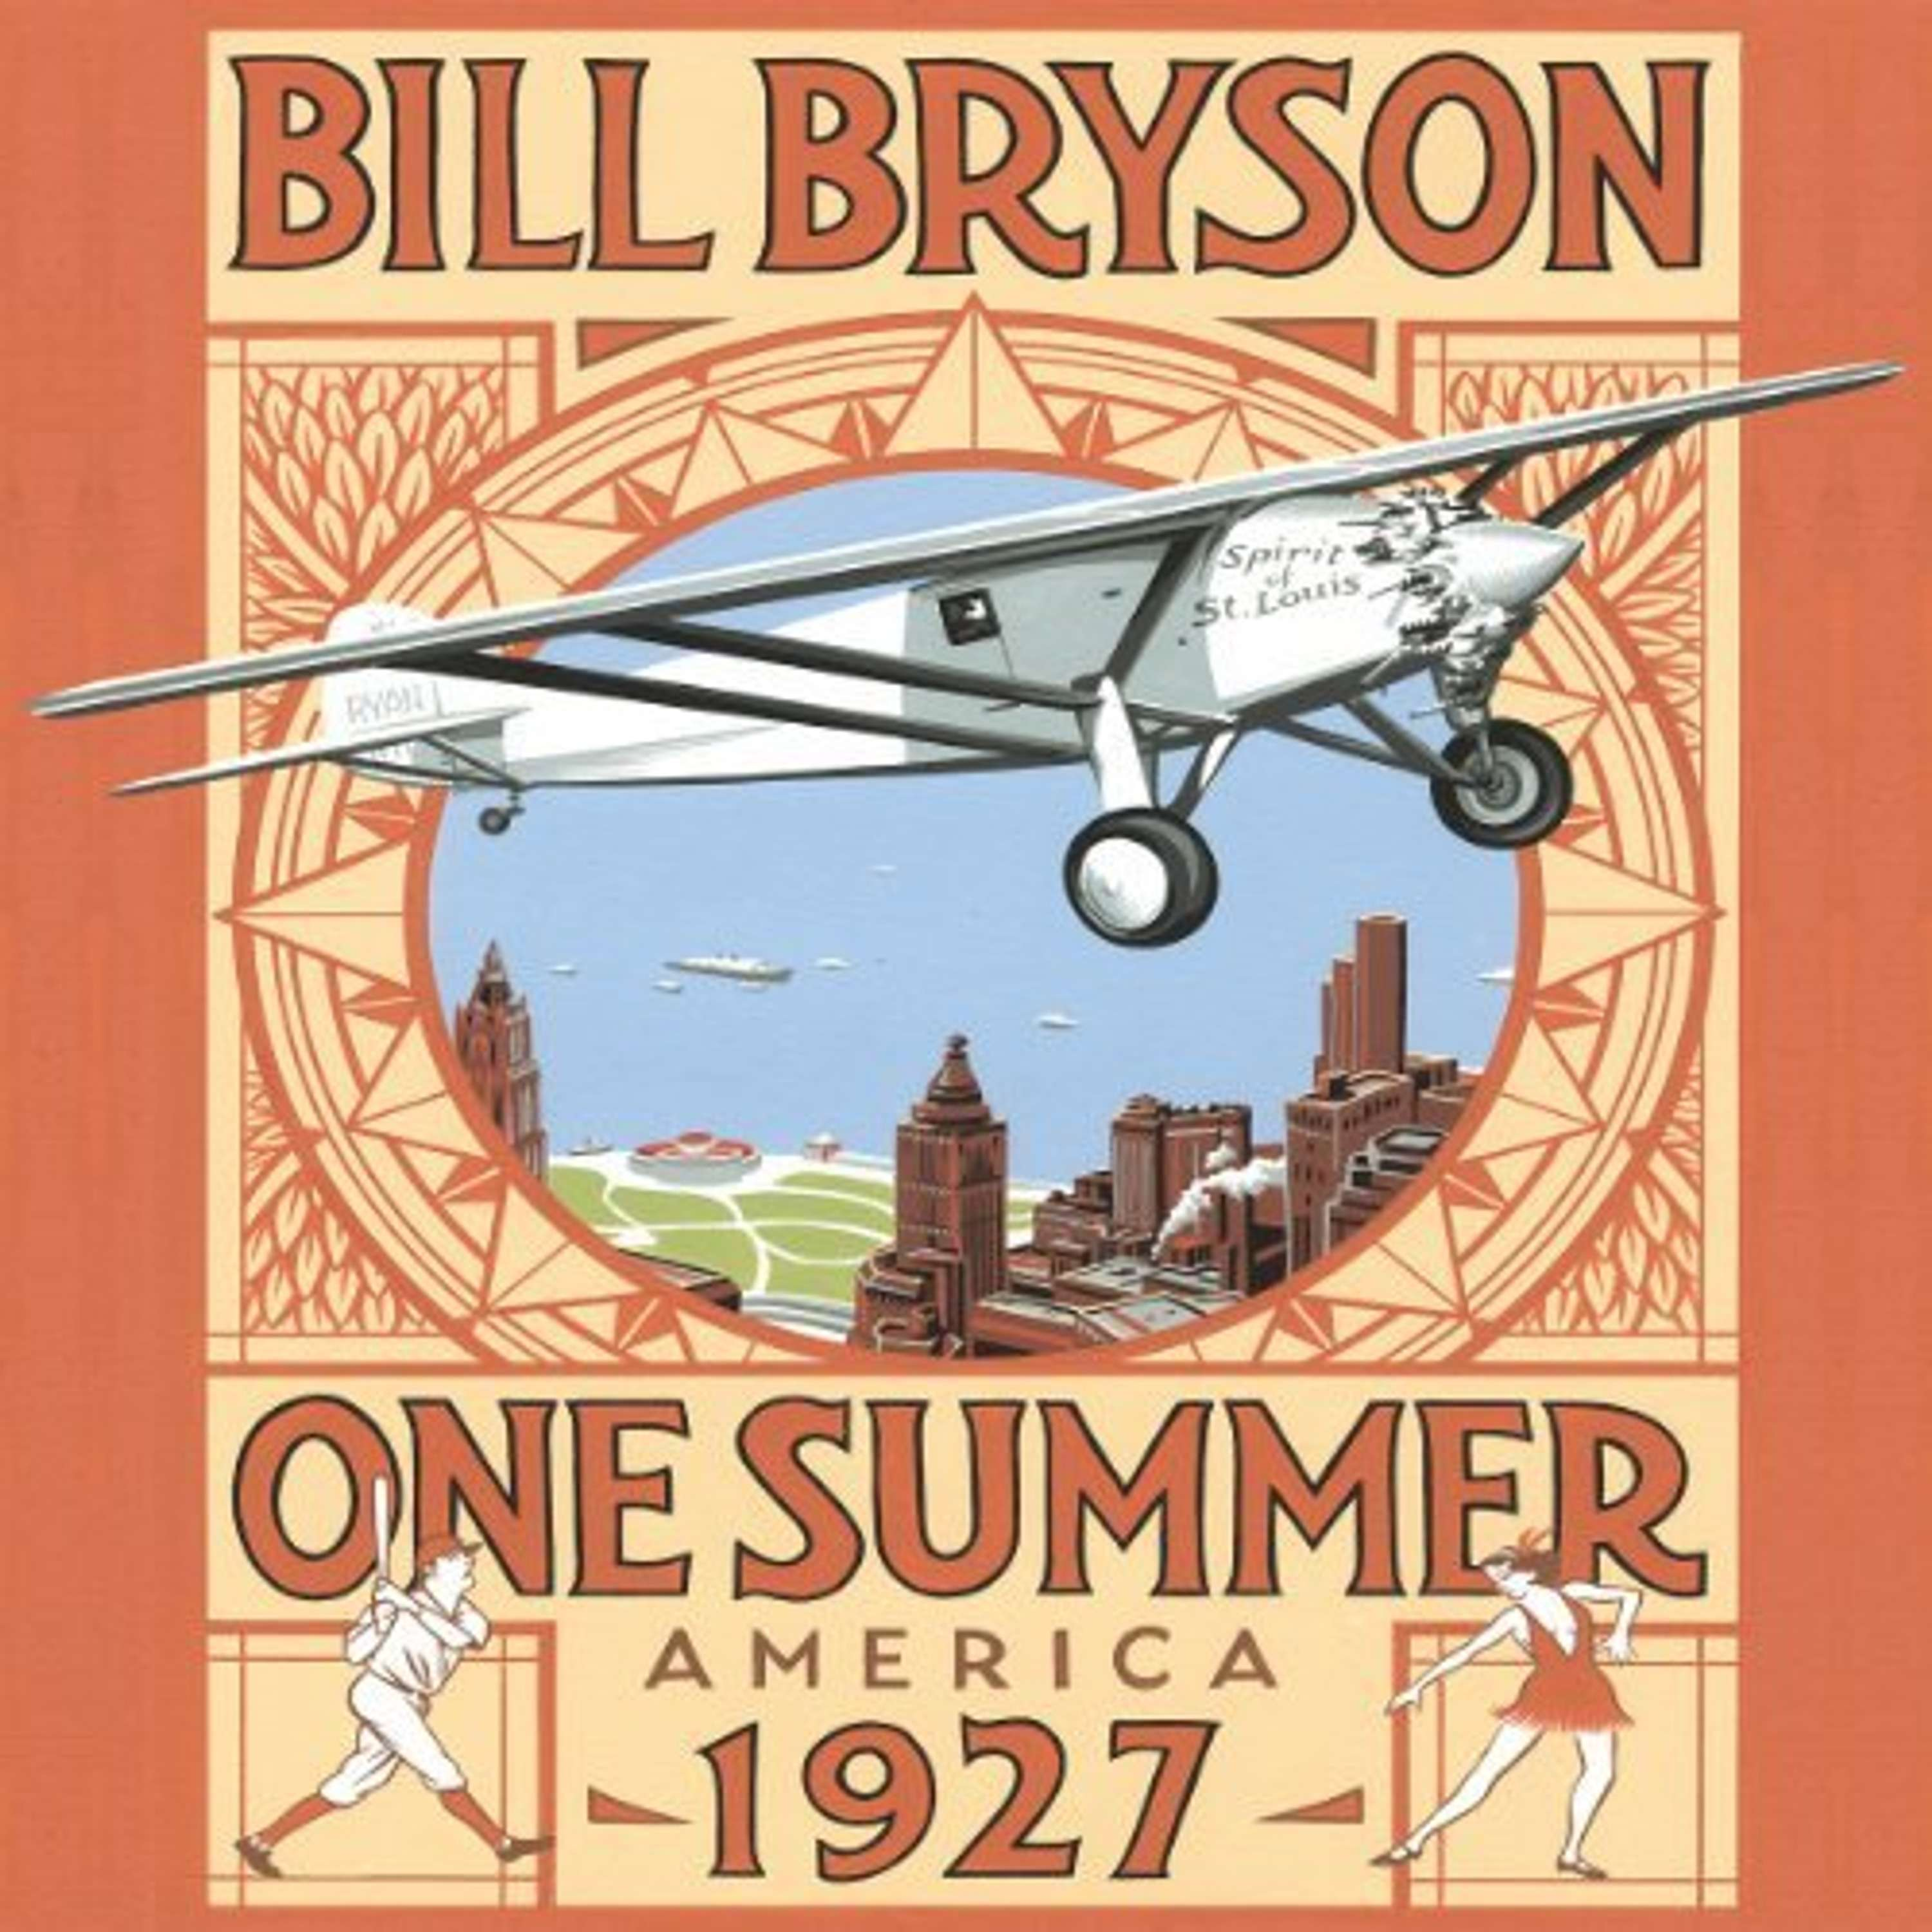 The Bill Bryson Collection, only at Audible | The Dots